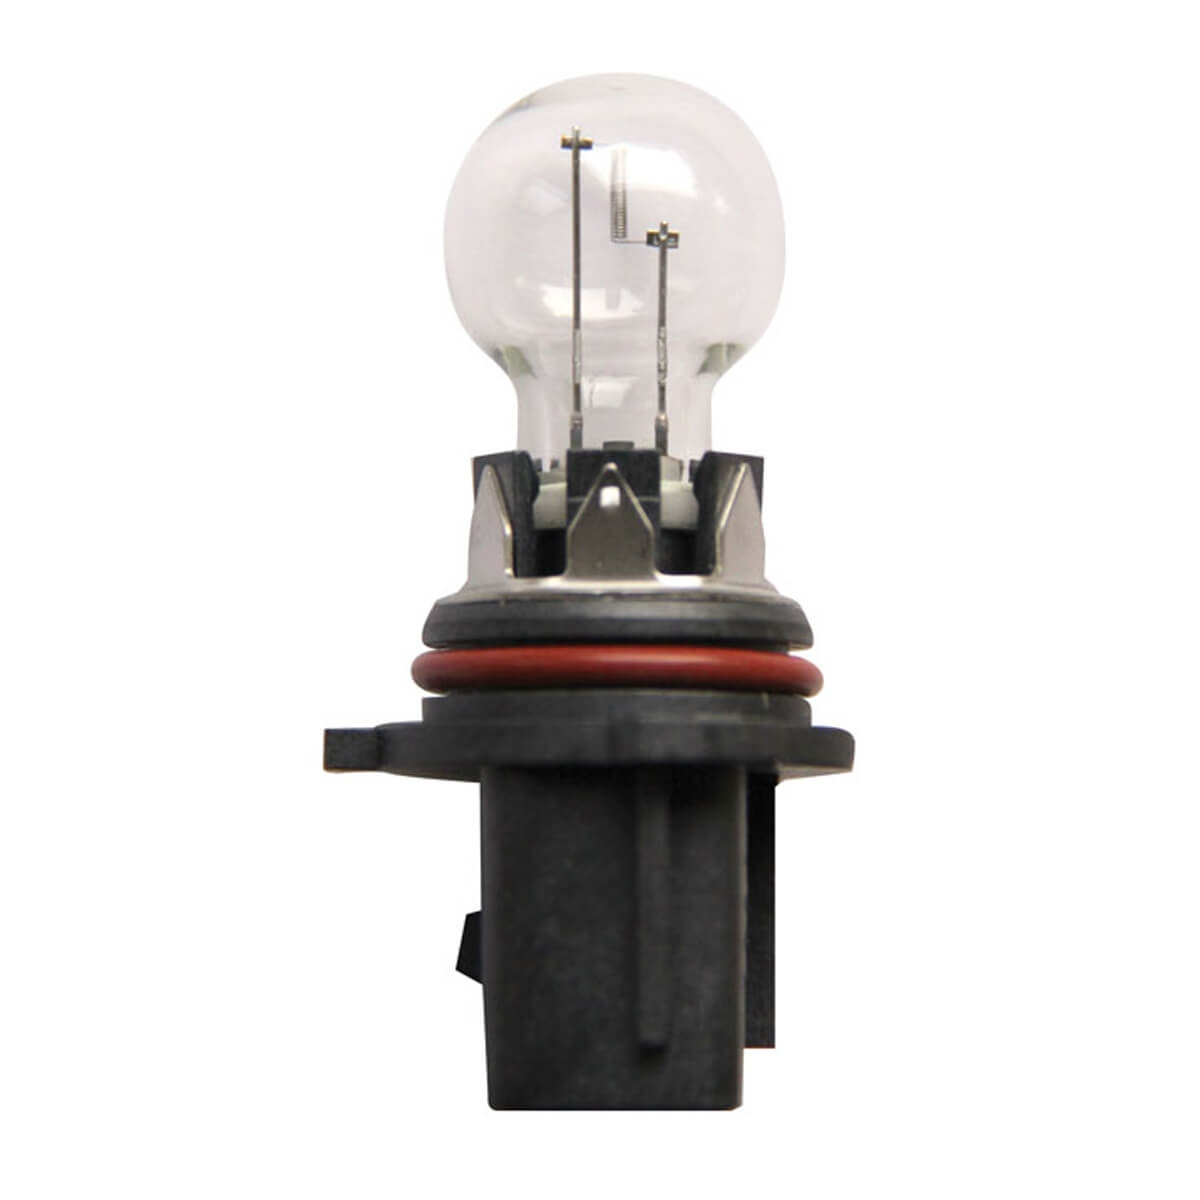 CHRYSLER VOYAGER IV Daylight Running Bulb